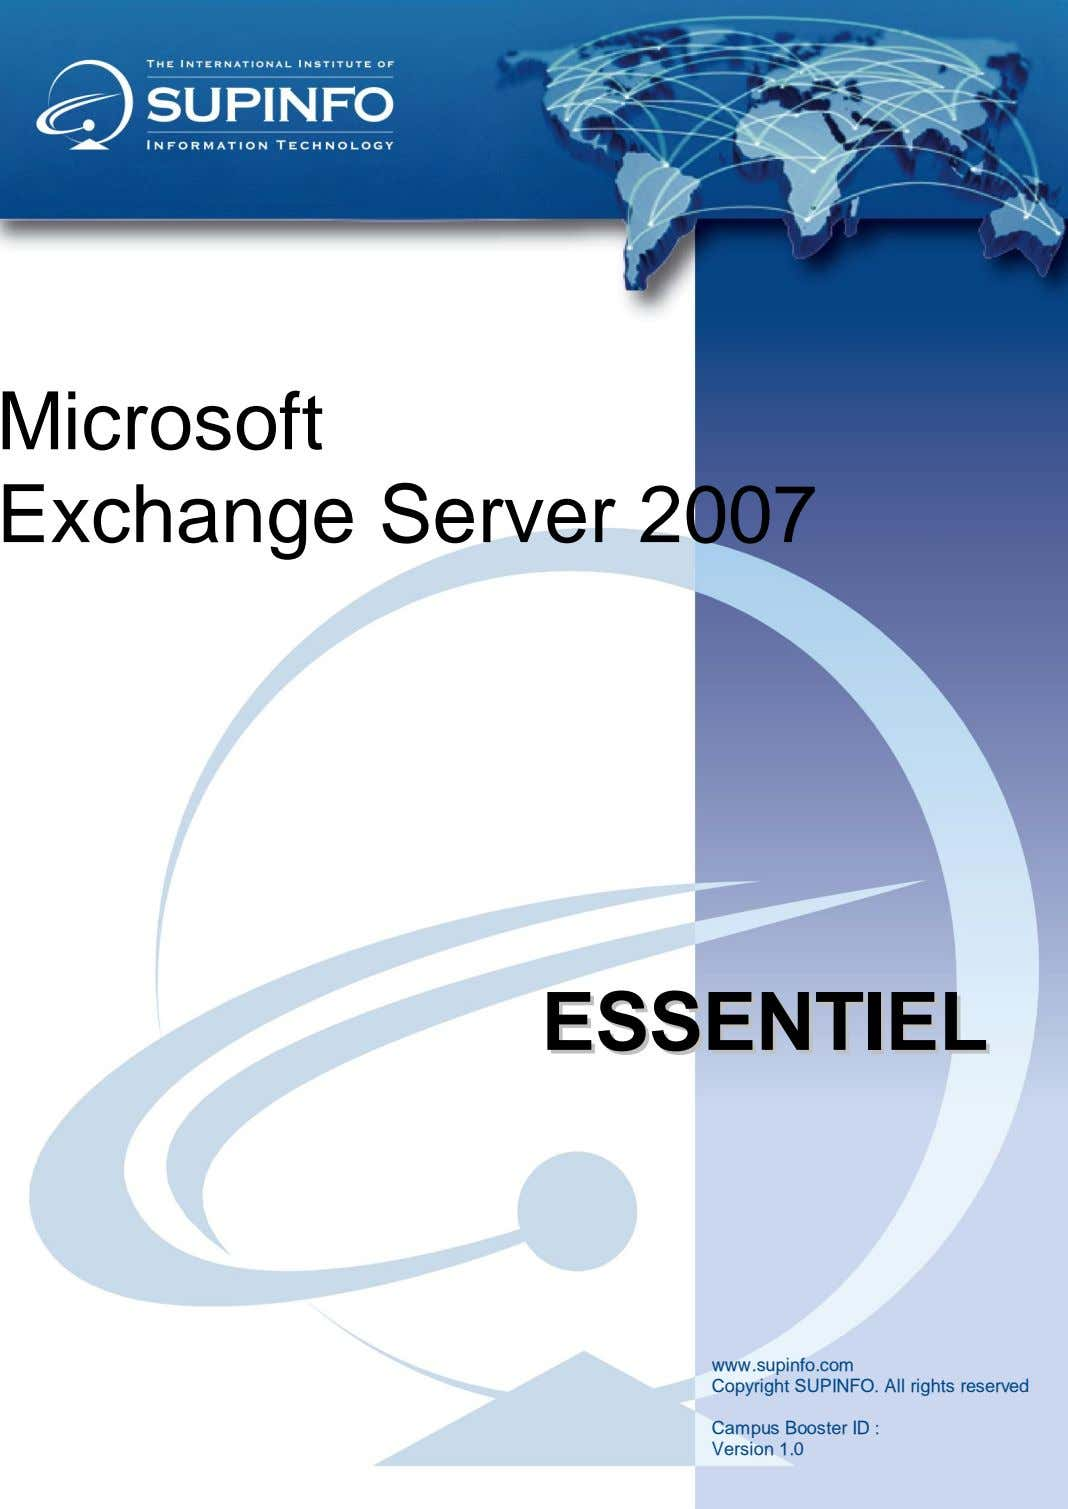 Microsoft Exchange Server 2007 EESSSSEENNTTIIEELL www.supinfo.com Copyright SUPINFO. All rights reserved Campus